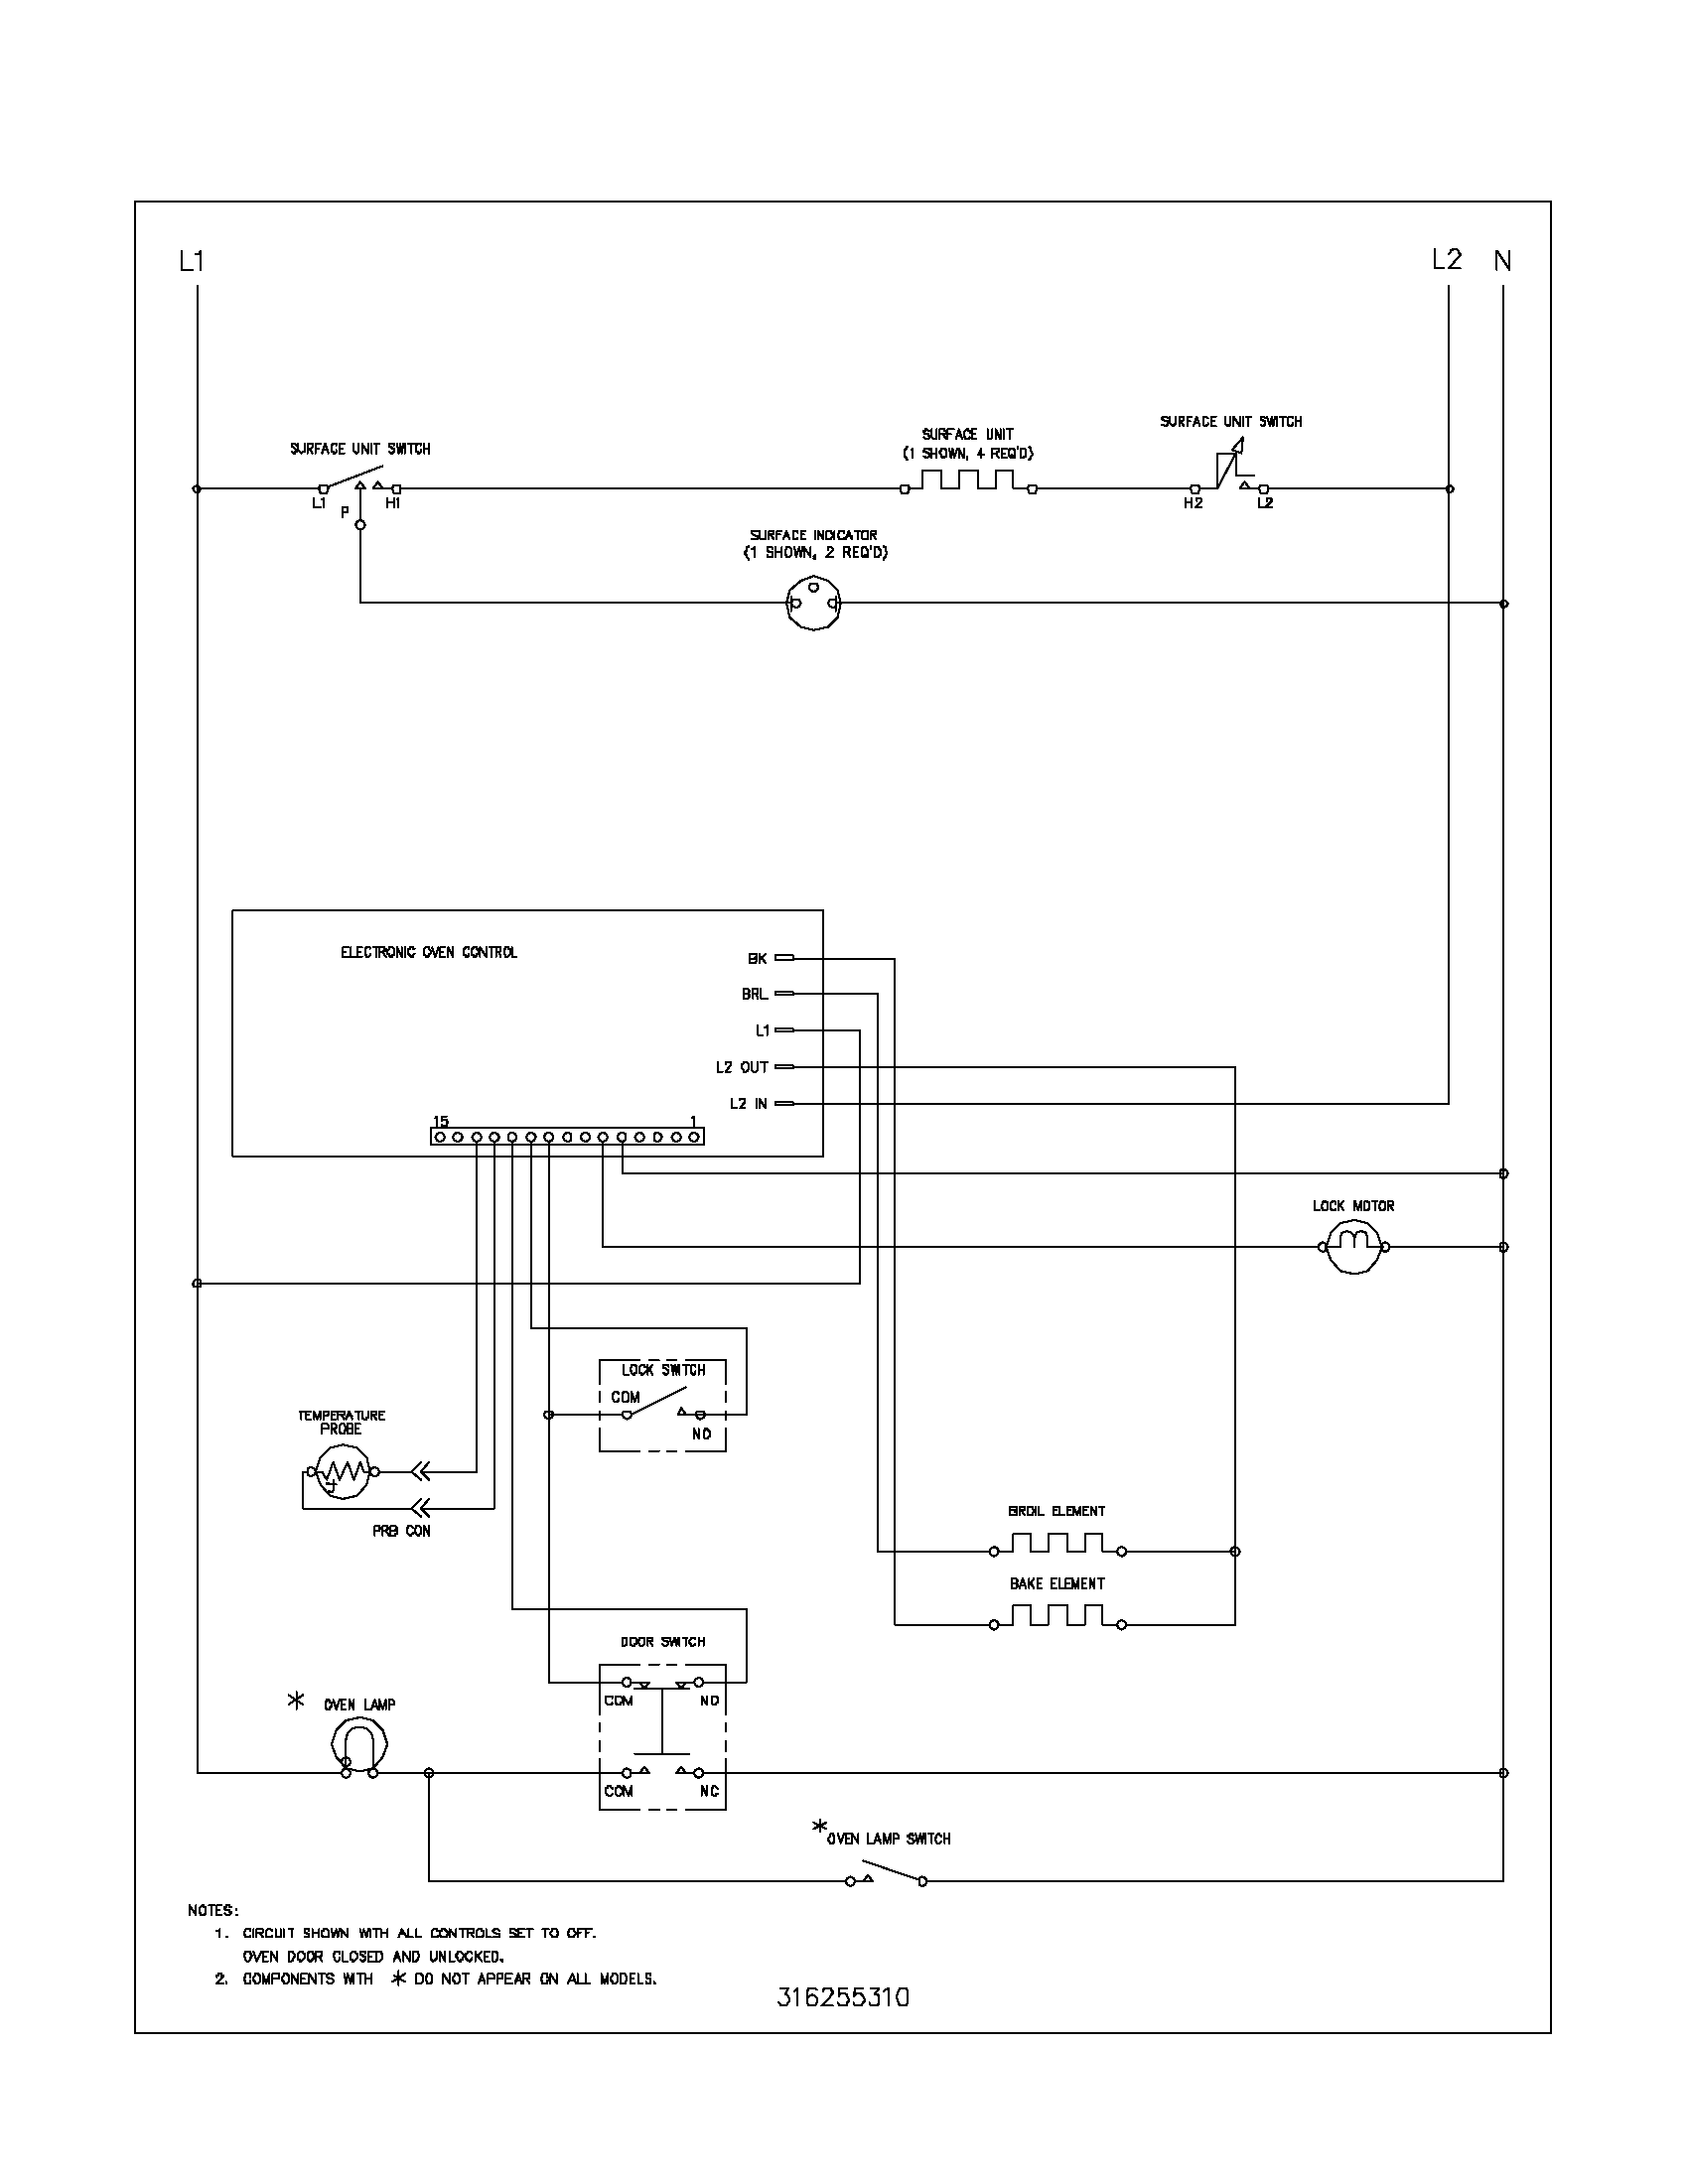 Frigidaire Wiring Diagram: Frigidaire FEF352ASF Electric Range Timer - Stove Clocks and ,Design